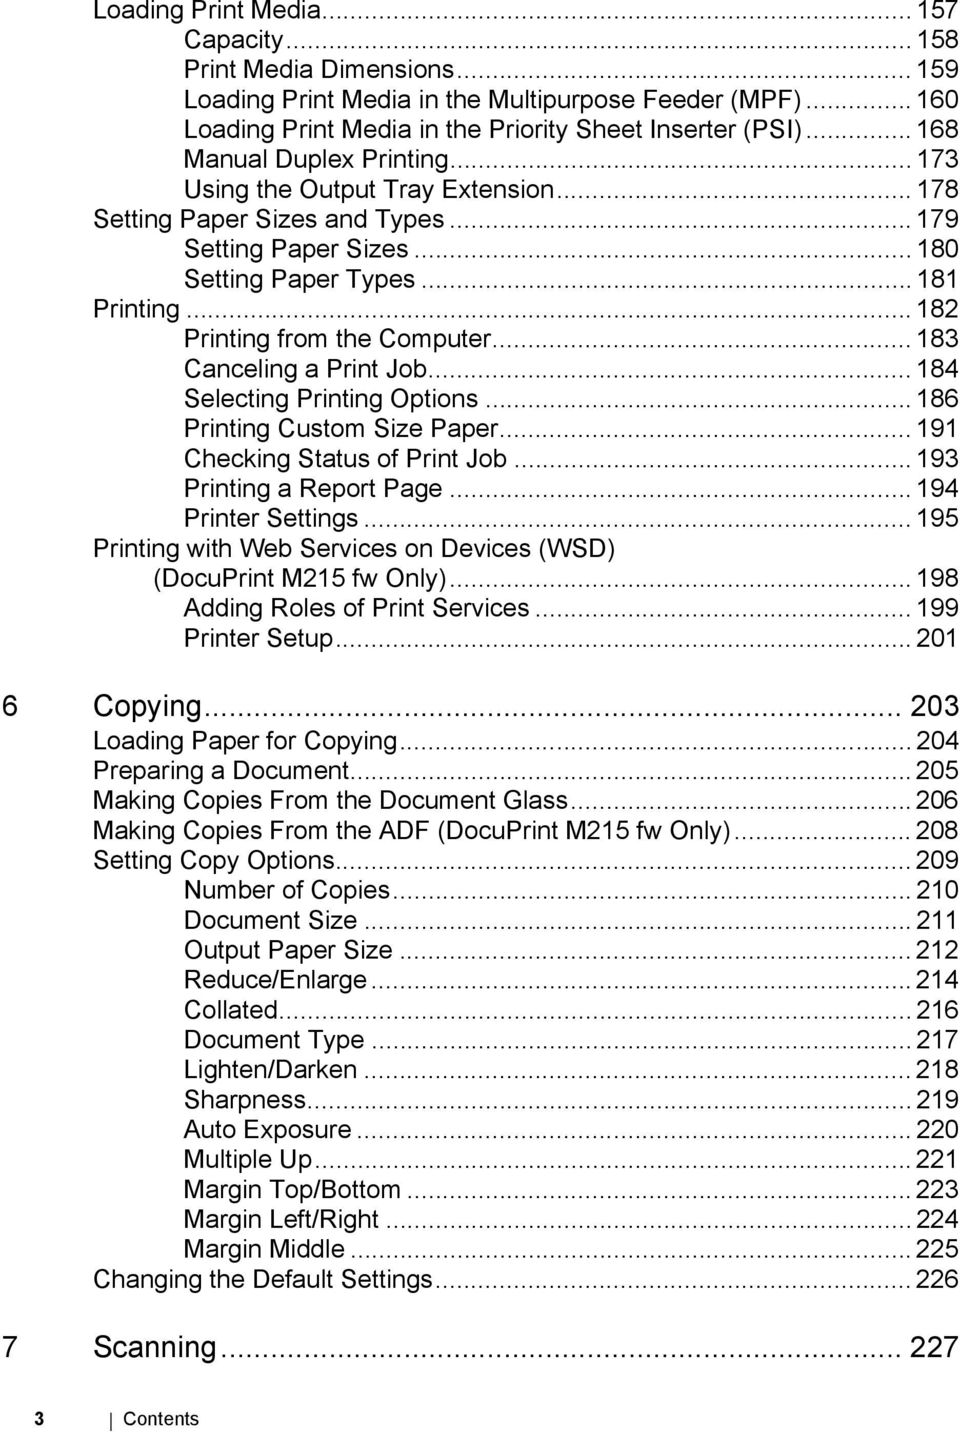 .. 182 Printing from the Computer... 183 Canceling a Print Job... 184 Selecting Printing Options... 186 Printing Custom Size Paper... 191 Checking Status of Print Job... 193 Printing a Report Page.